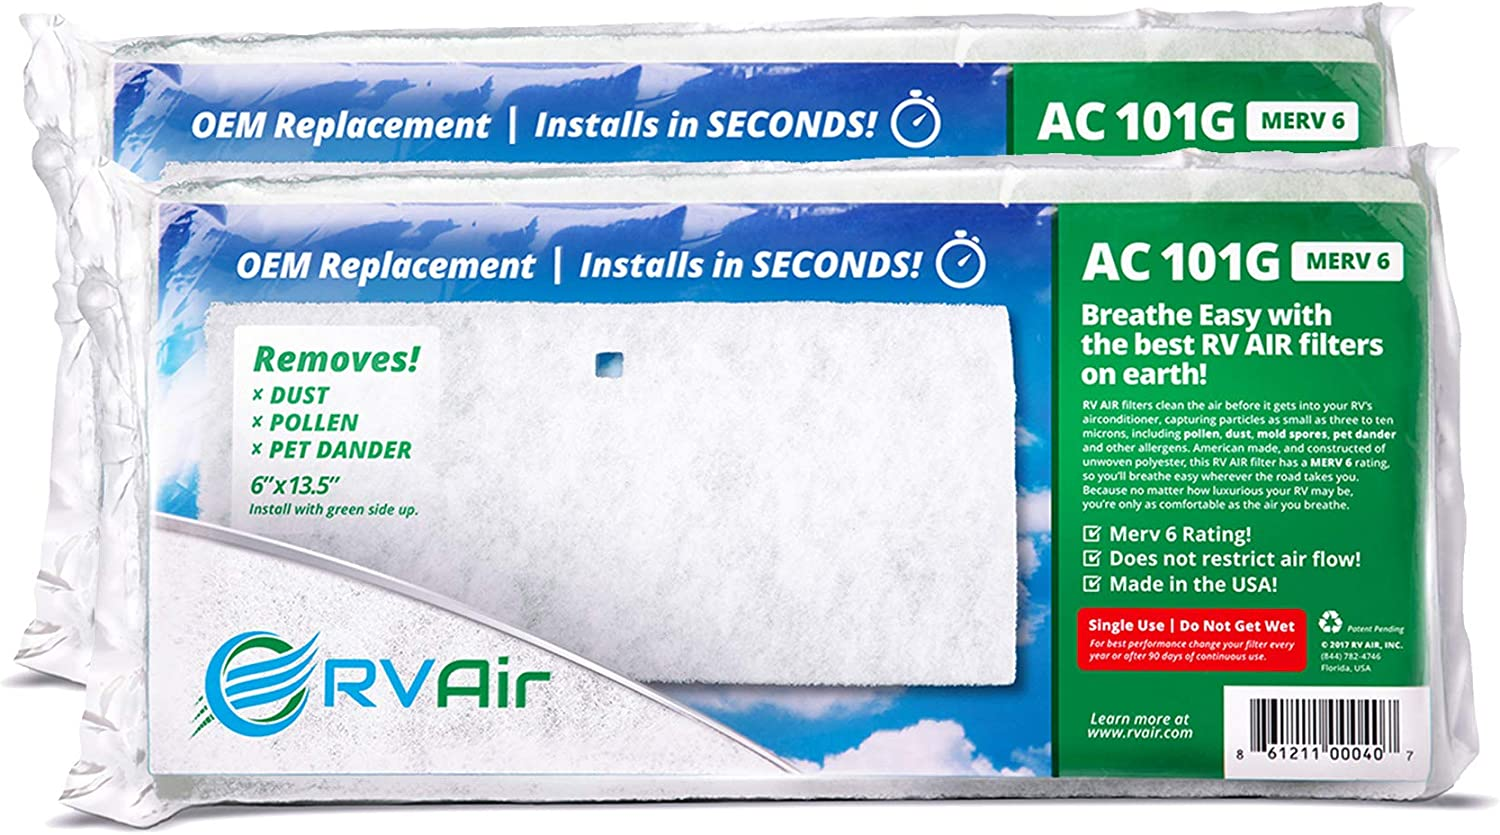 RV Air RV AC Filter   2 Filters AC 101G Air Filters for RV Air Conditioner   Made in USA RV Filter to Replace Standard RV Air Conditioner Filters for Better Airflow and Cleaner Air   MERV 6 Rated